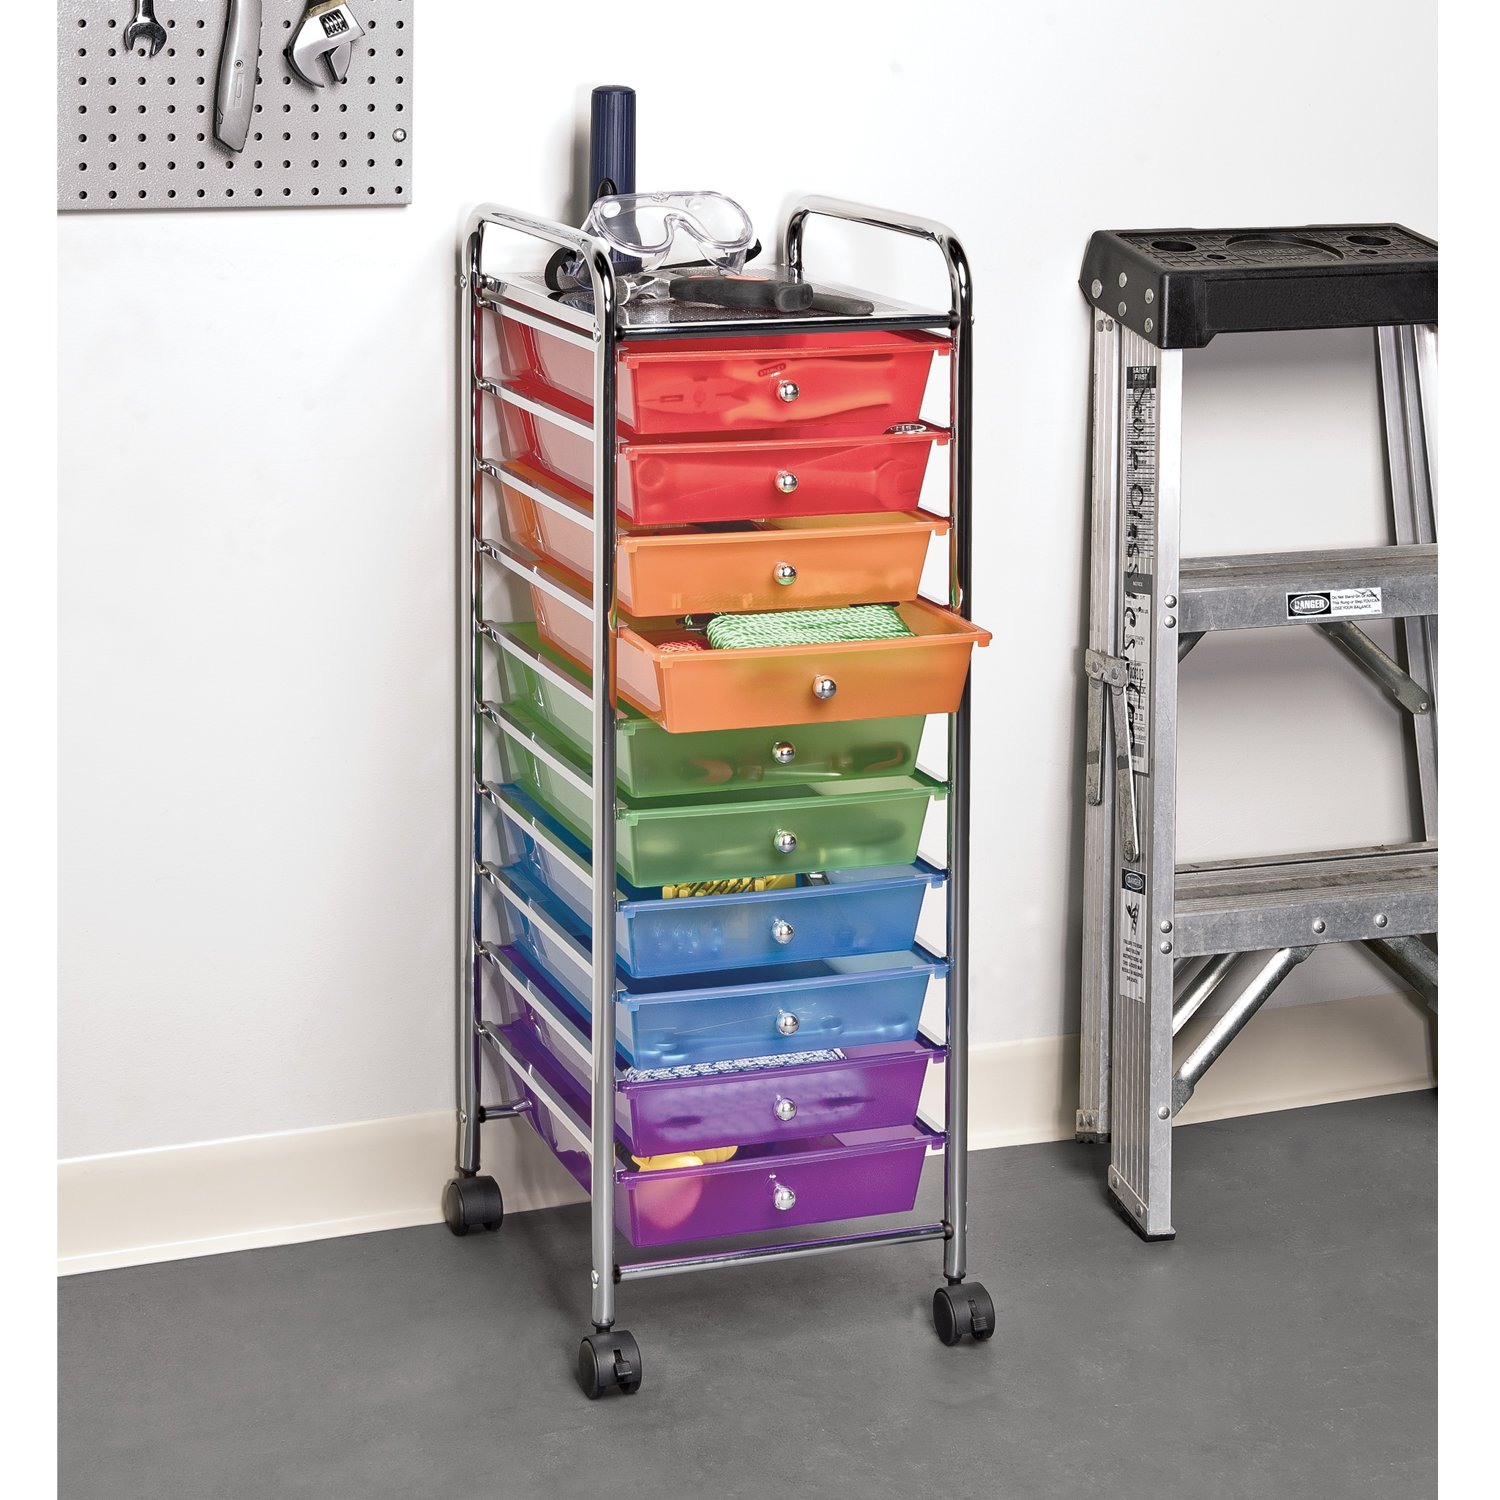 Etonnant Amazon.com: Seville Classics 10 Drawer Organizer Cart, Multi Color: Home U0026  Kitchen